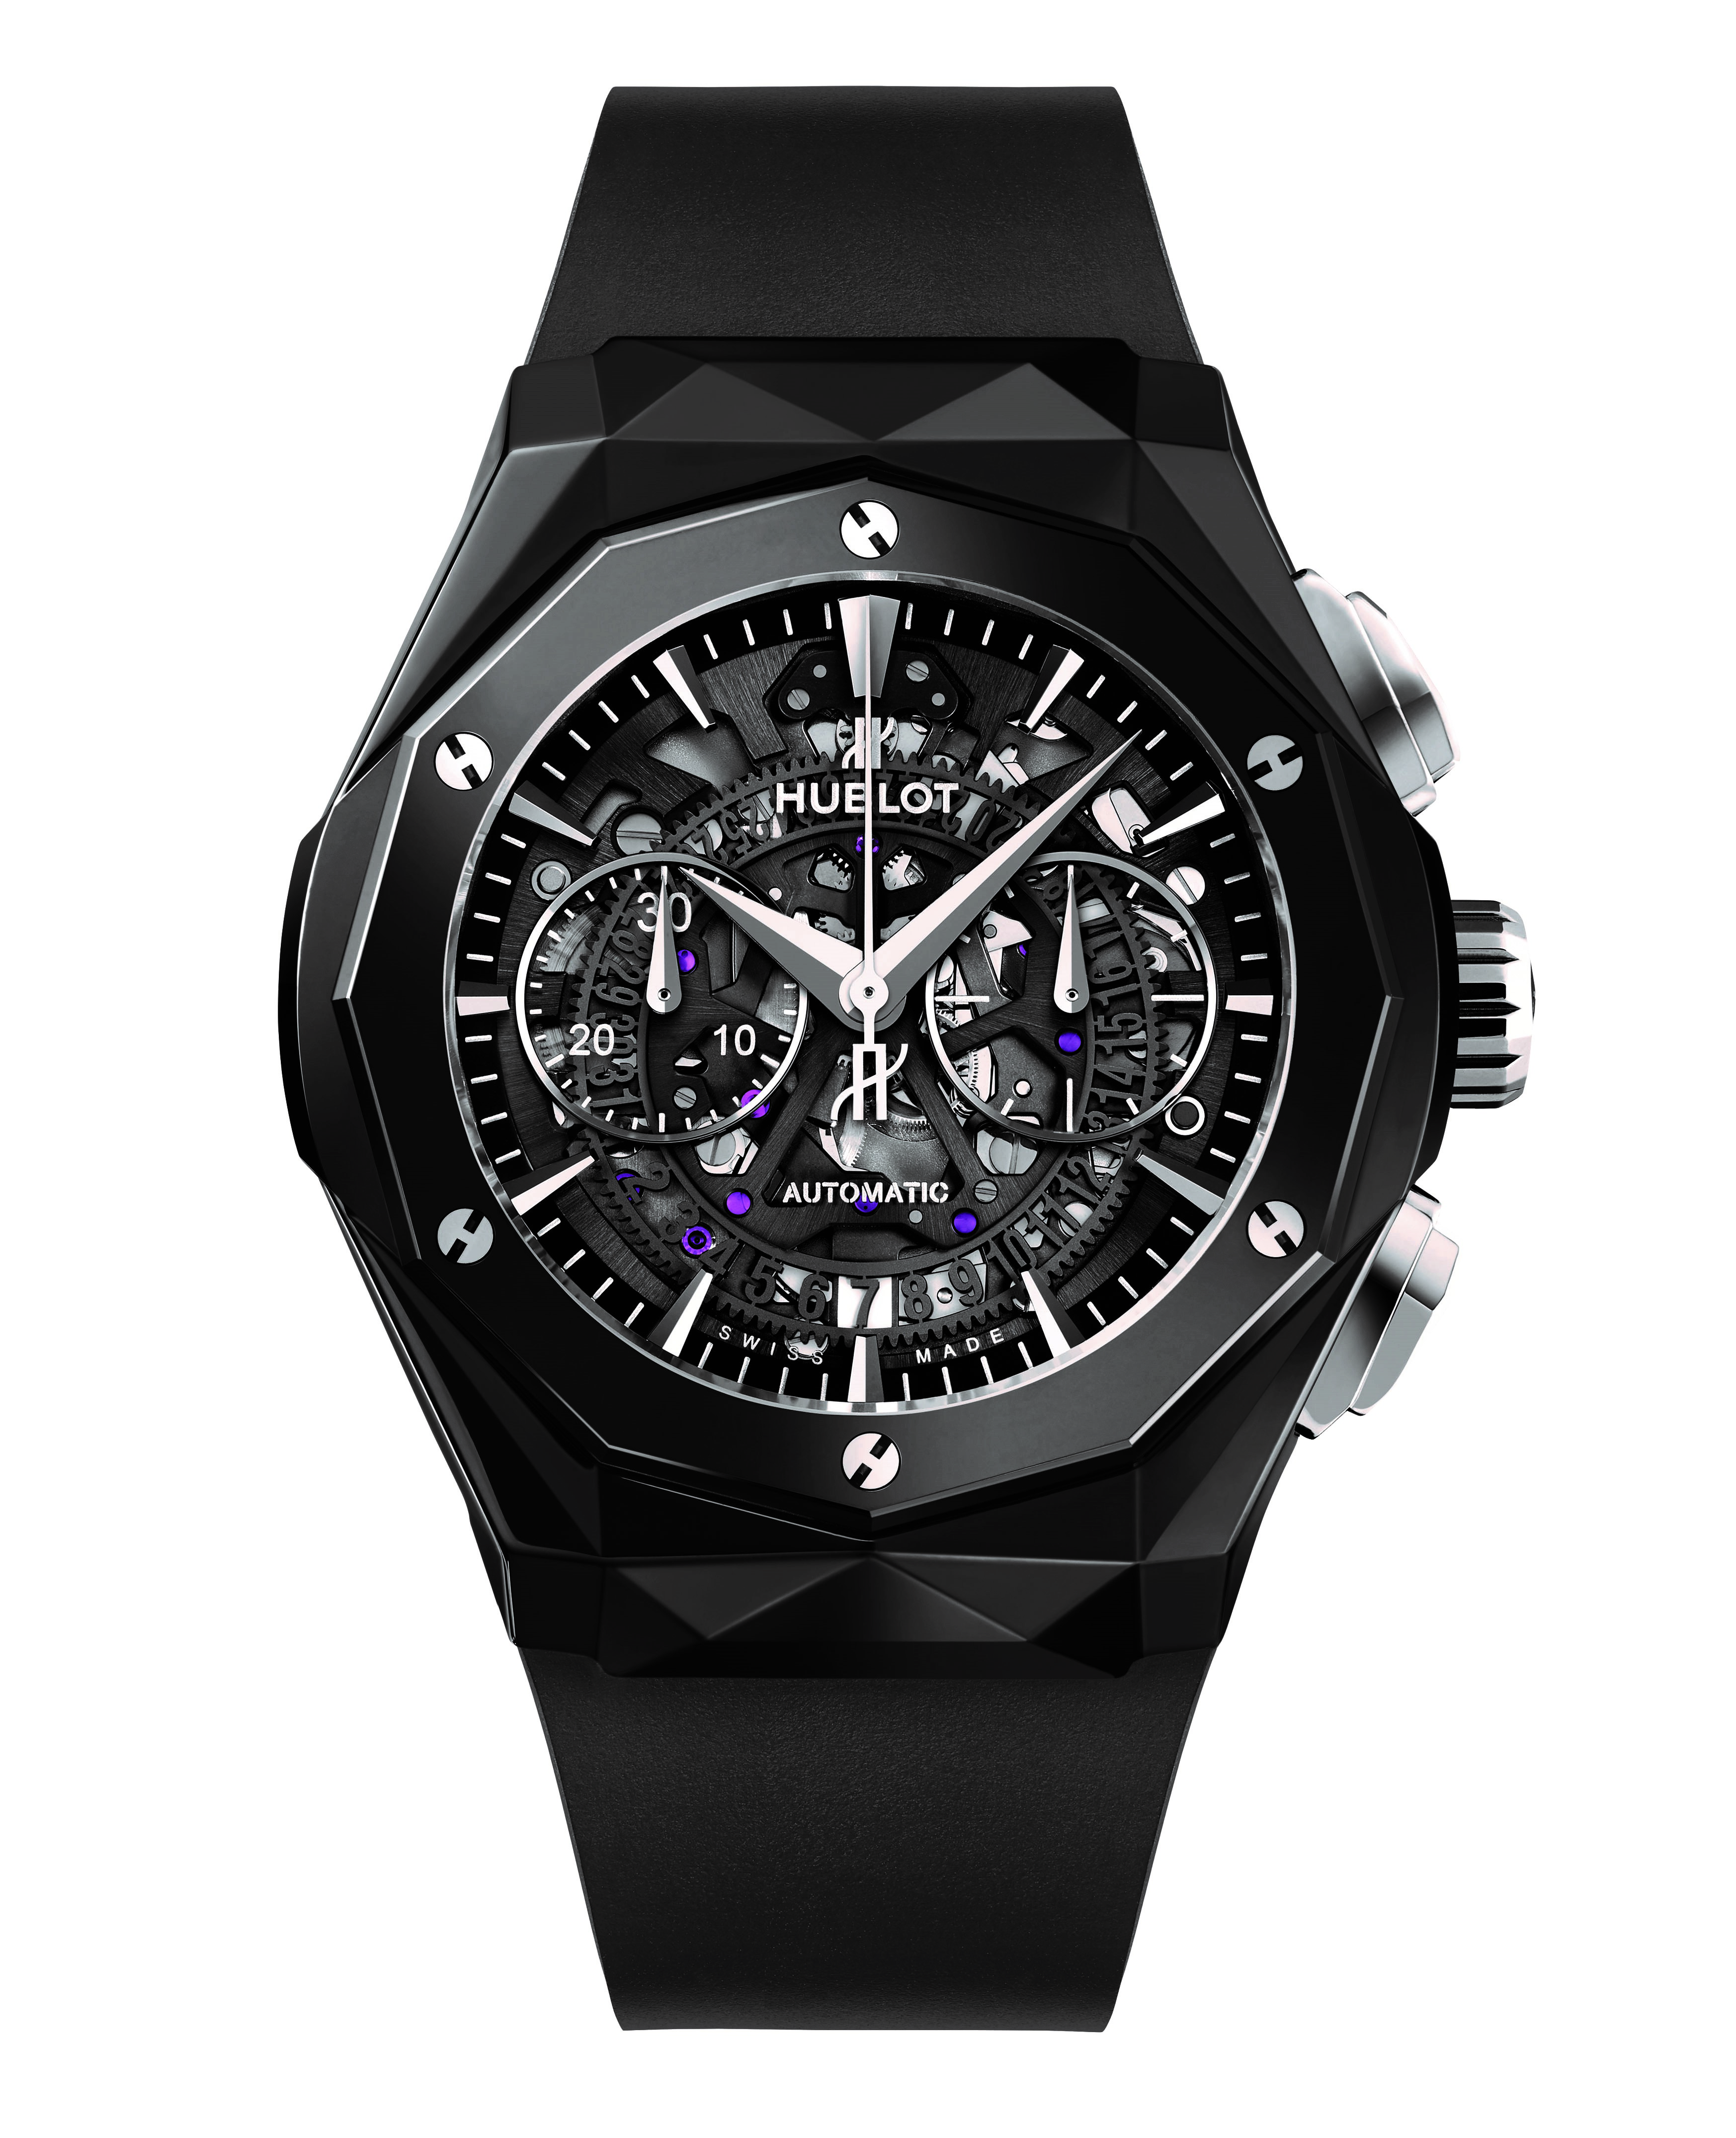 CLASSIC FUSION <br> AEROFUSION CHRONOGRAPH ORLINSKI BLACK MAGIC